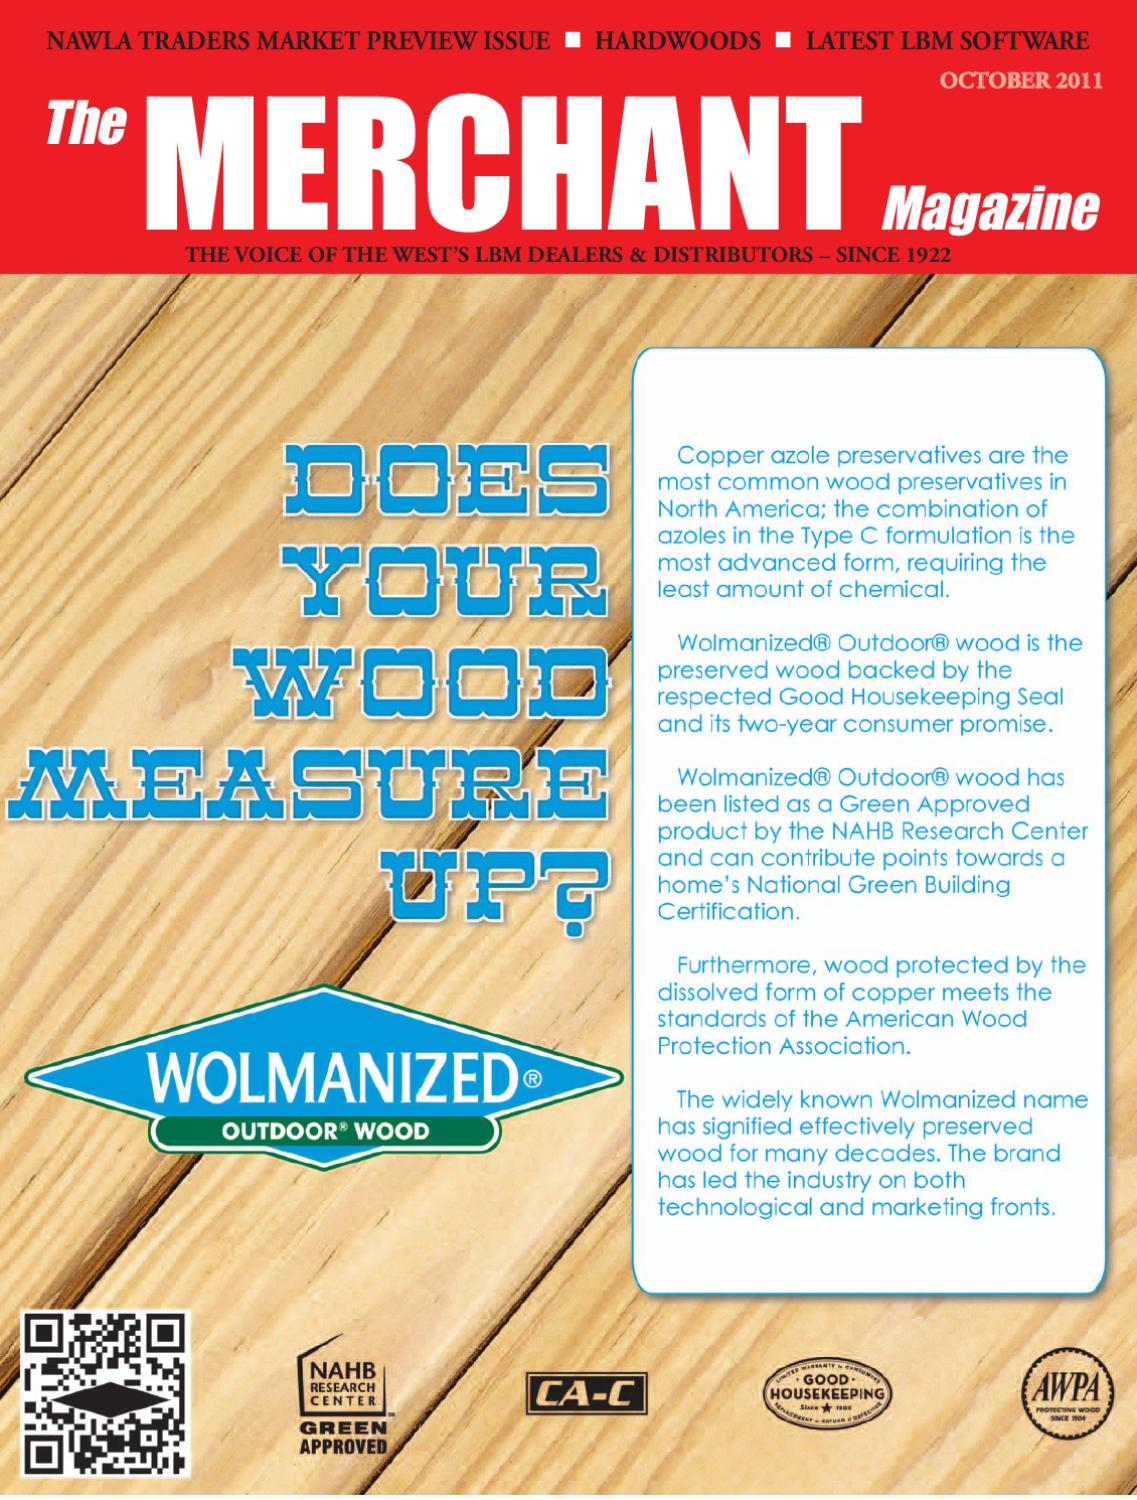 The Merchant Magazine - October 2011 by 526 Media Group - issuu